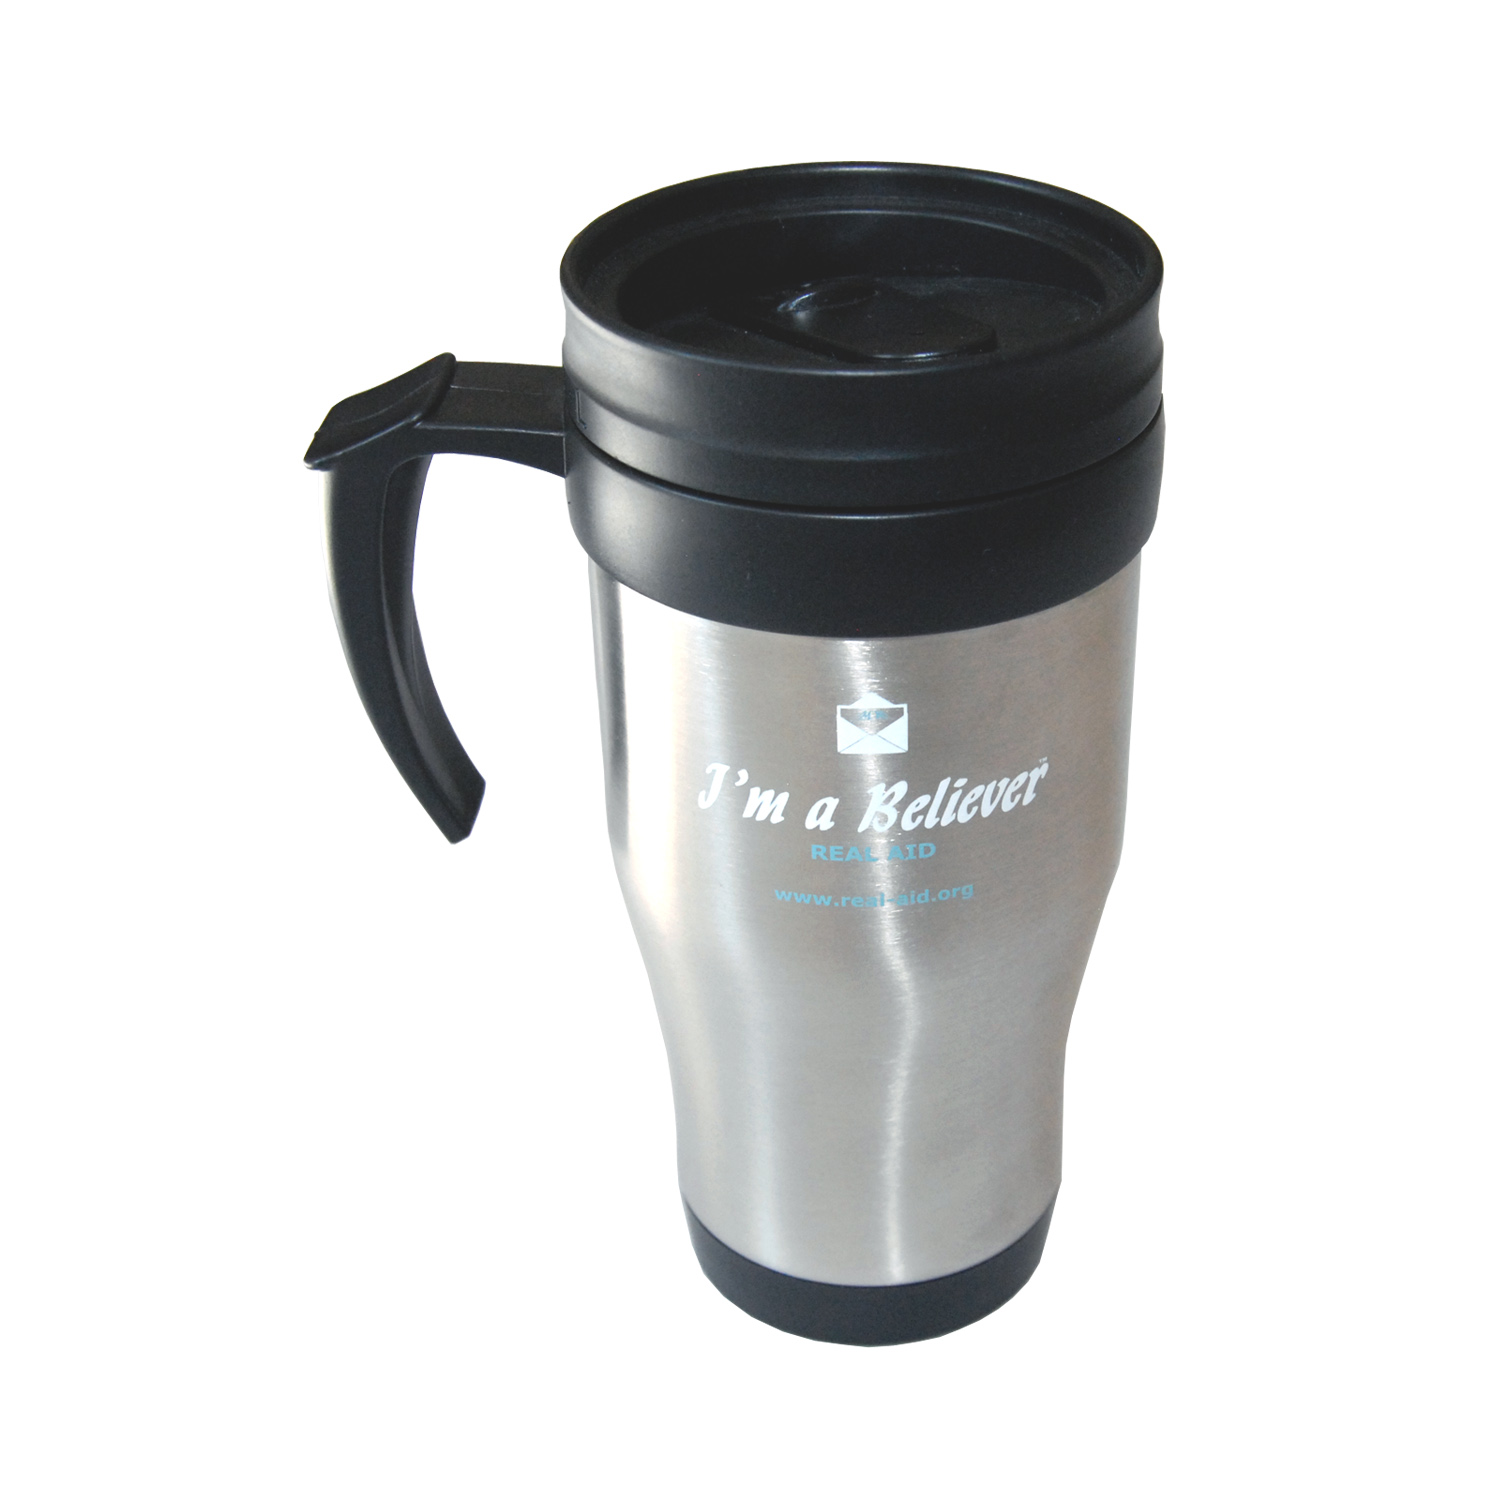 I'm a Believer' Thermal Travel Mug